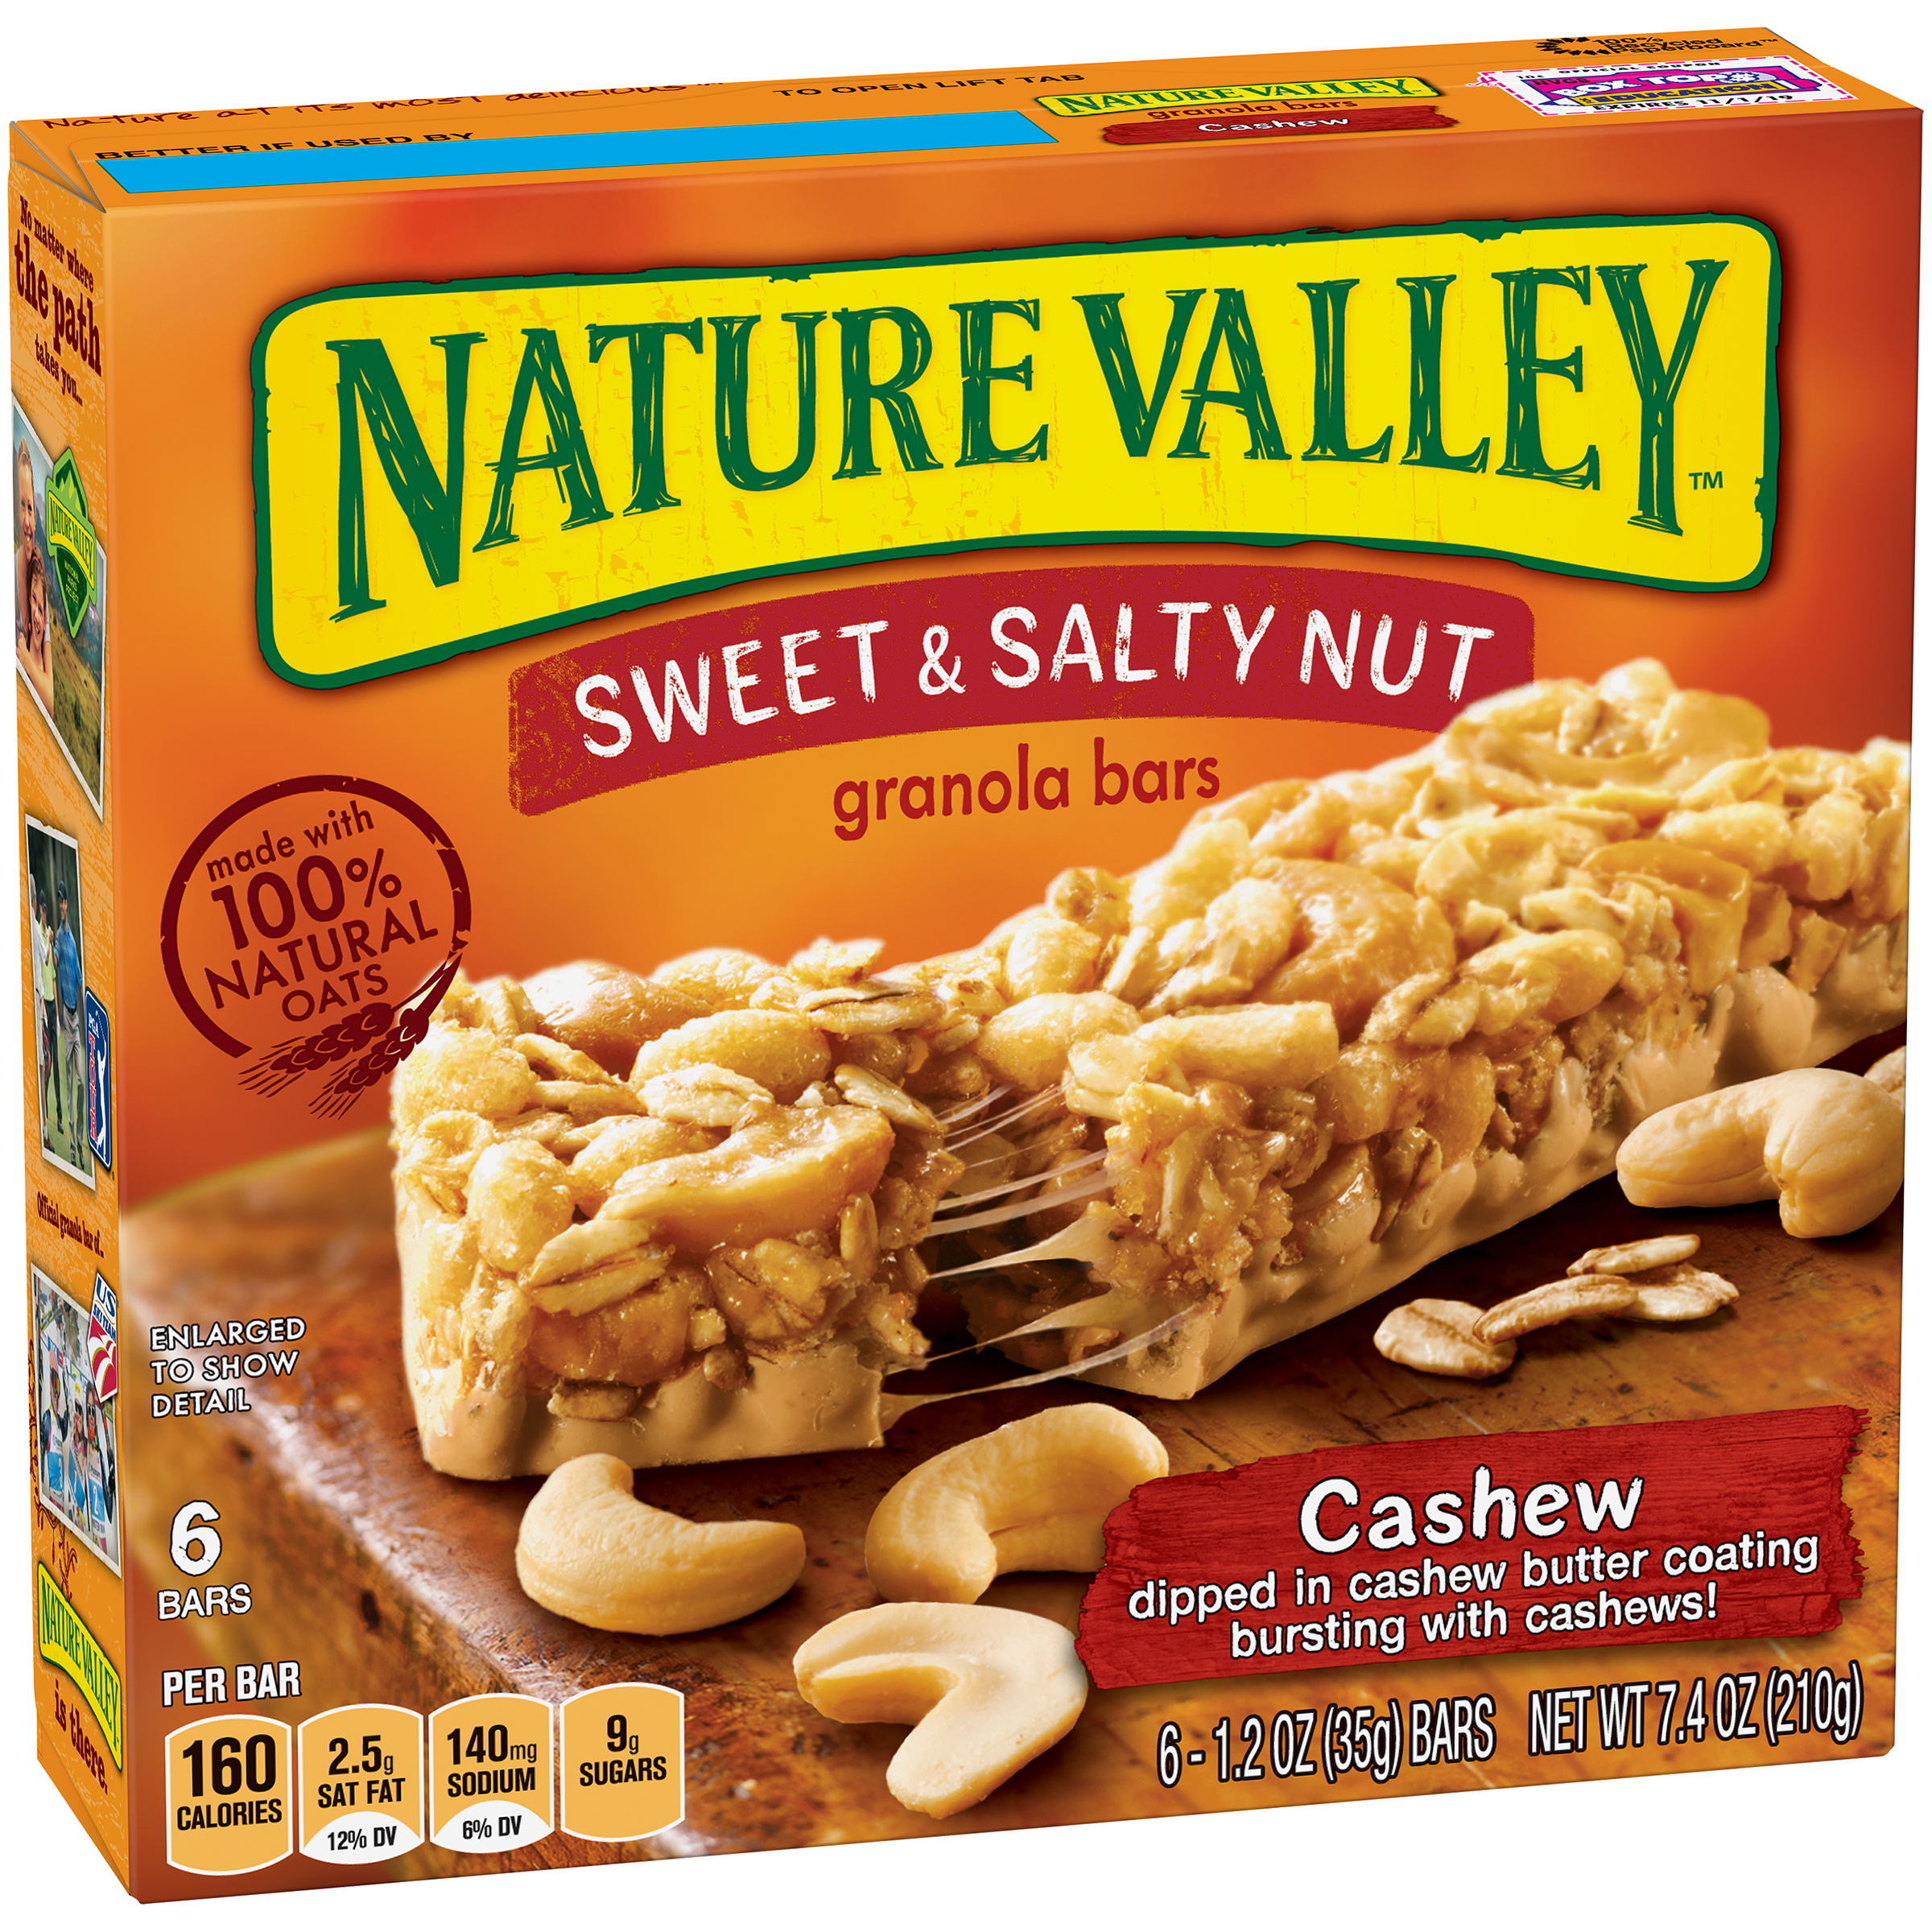 Nature Valley��� Cashew Sweet & Salty Nut Granola Bars 6 ct Box